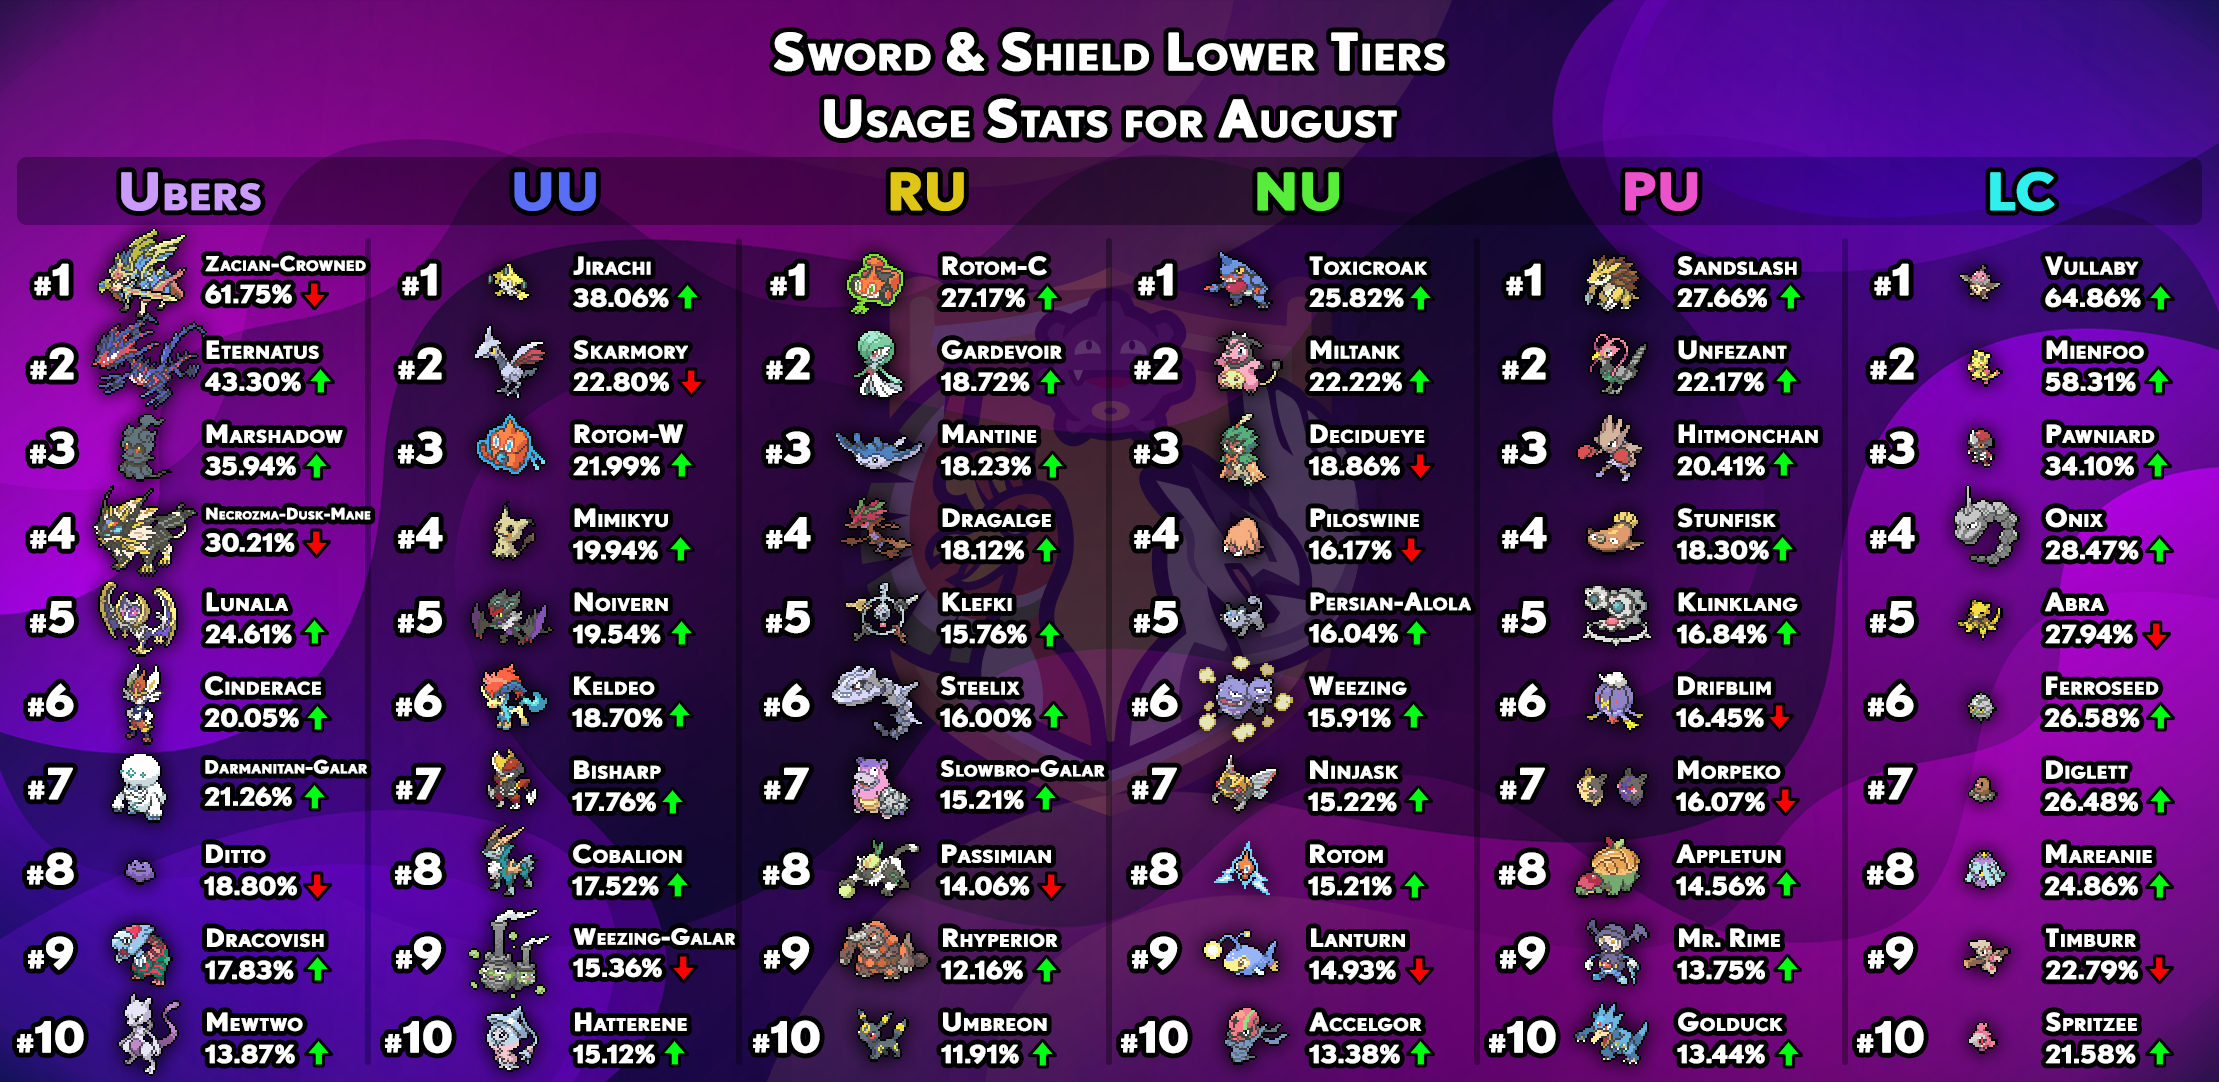 usagestats-gen8-other-tiers-august.png